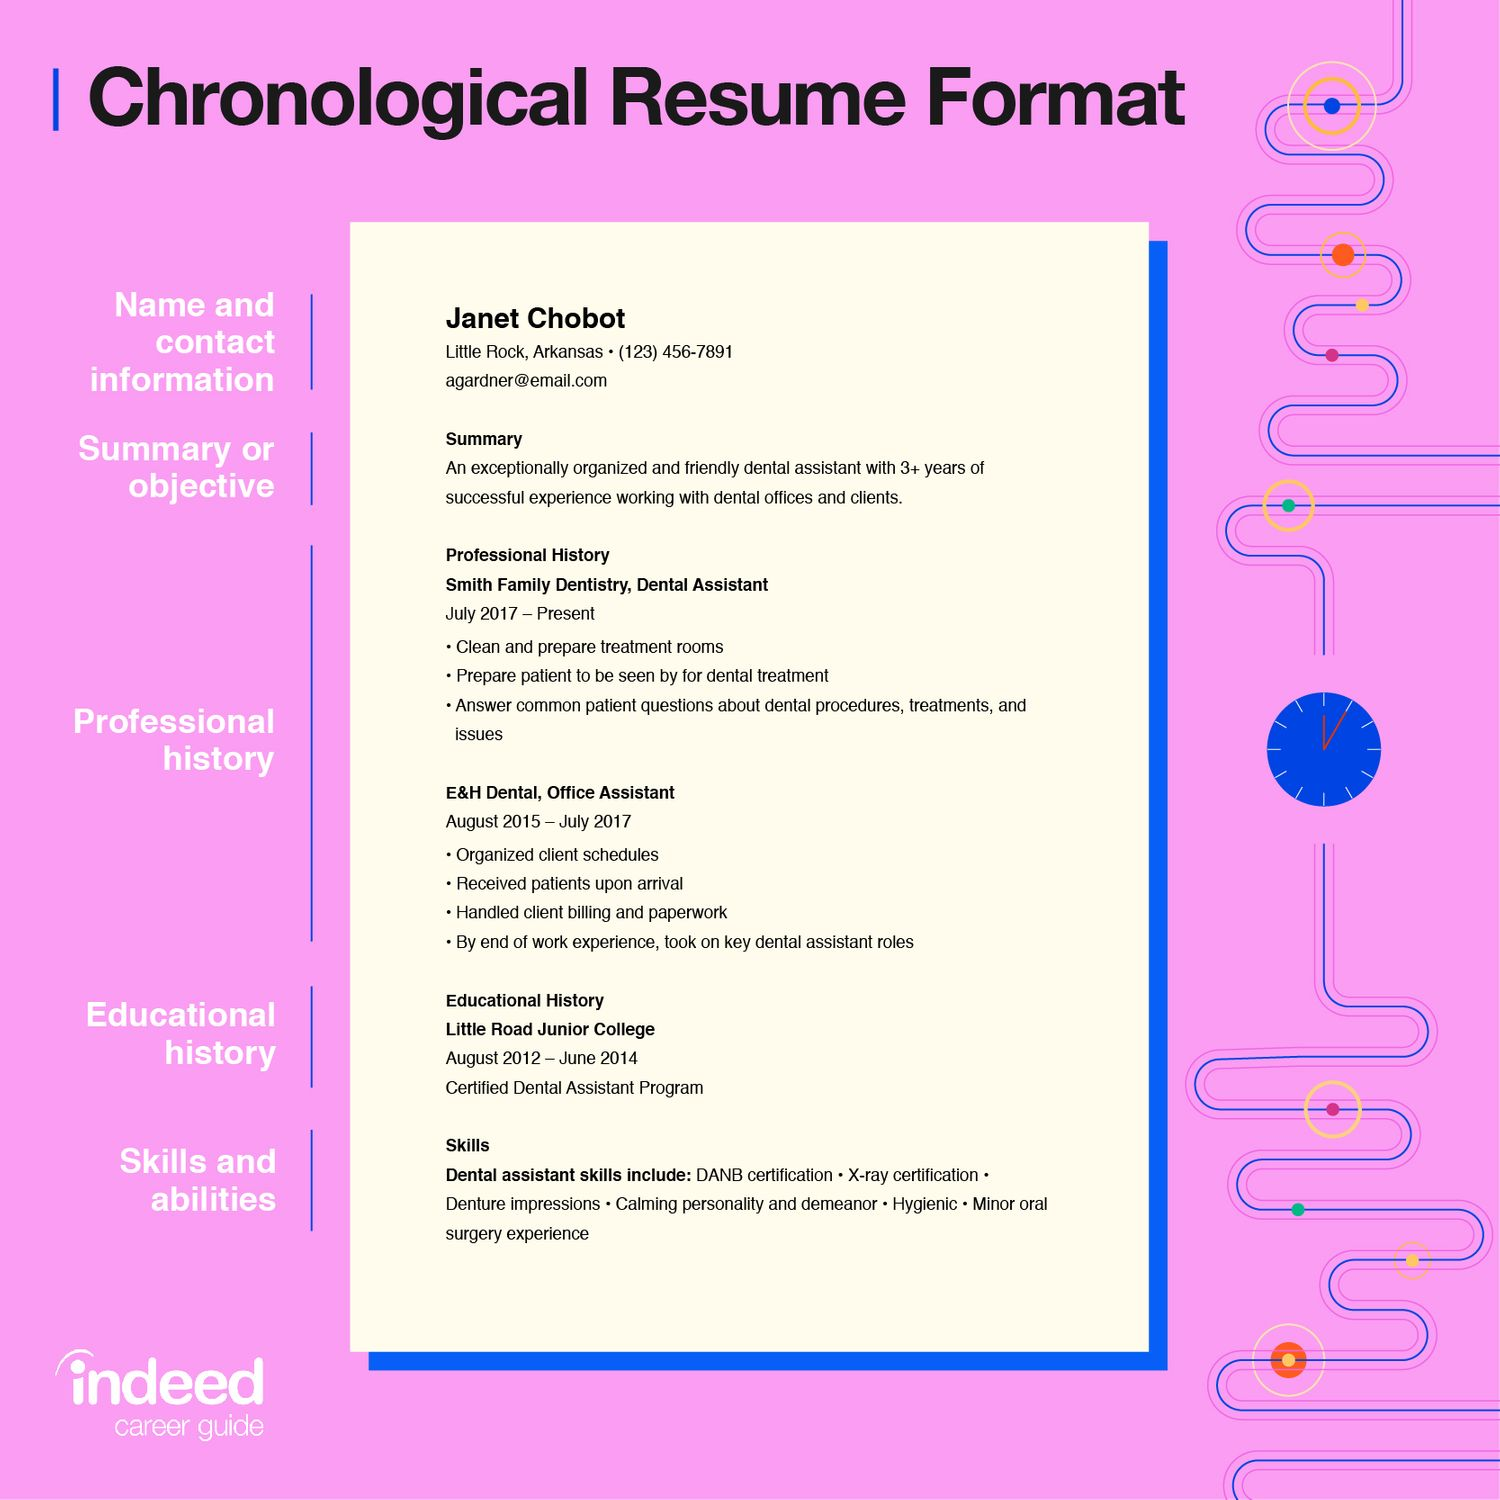 resume format guide tips and examples of the best formats indeed for applying job resized Resume Resume For Applying Job